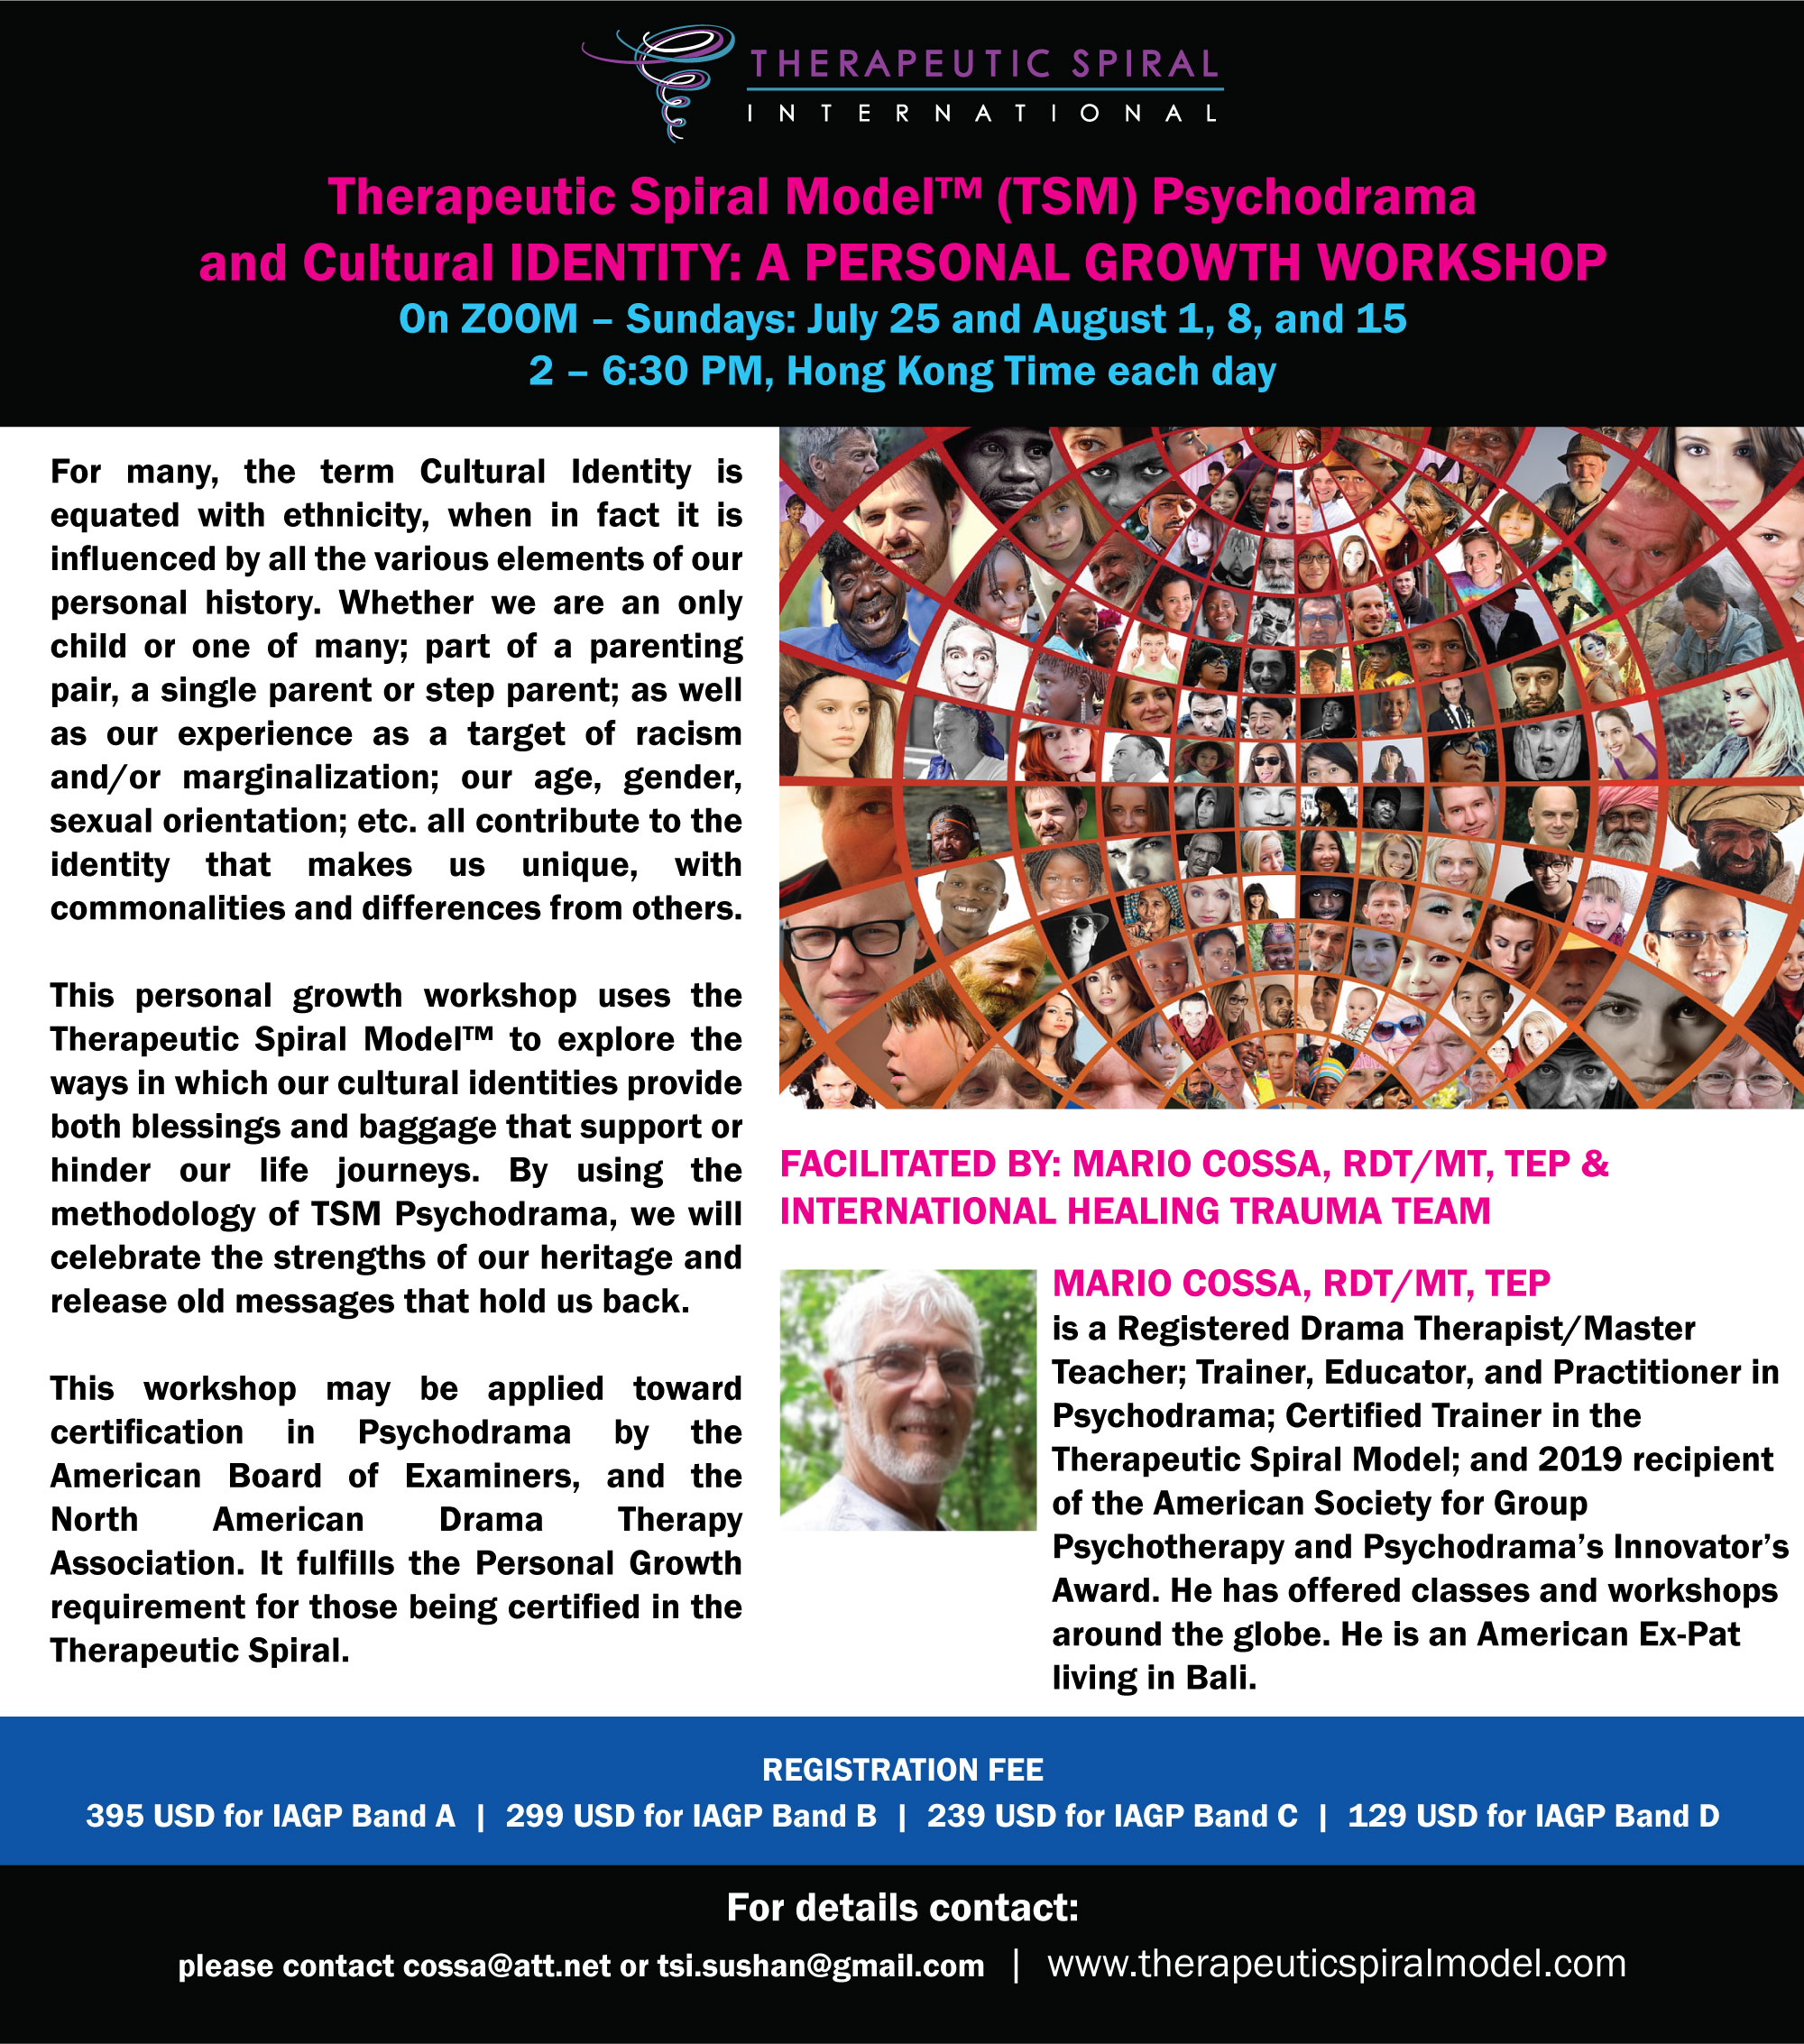 Therapeutic Spiral Model™ (TSM) Psychodrama and Cultural IDENTITY: A Personal Growth Workshop @ Via Zoom